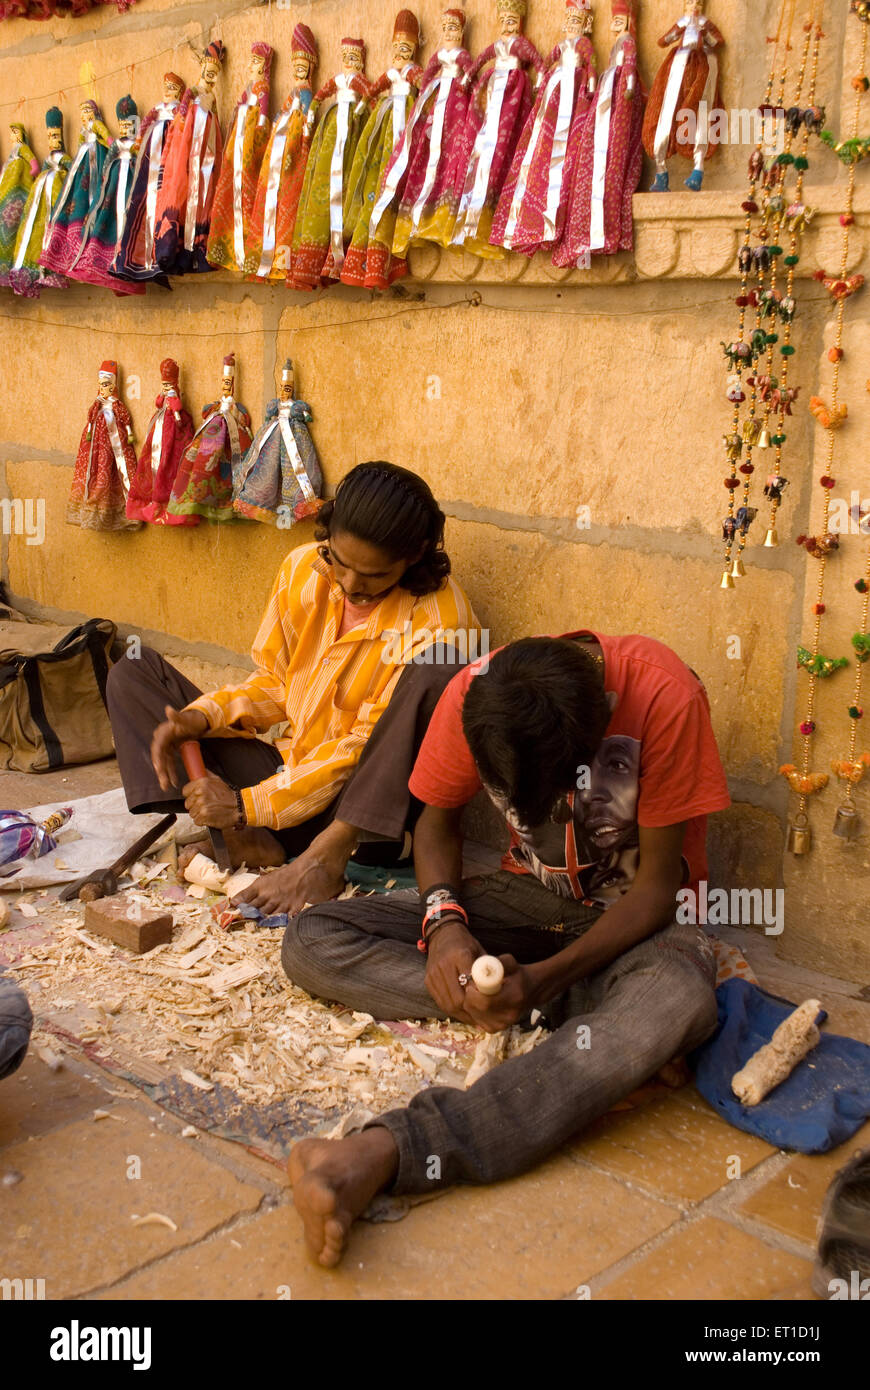 Artists are making wooden puppet ; Jaisalmer ; Rajasthan ; India - Stock Image